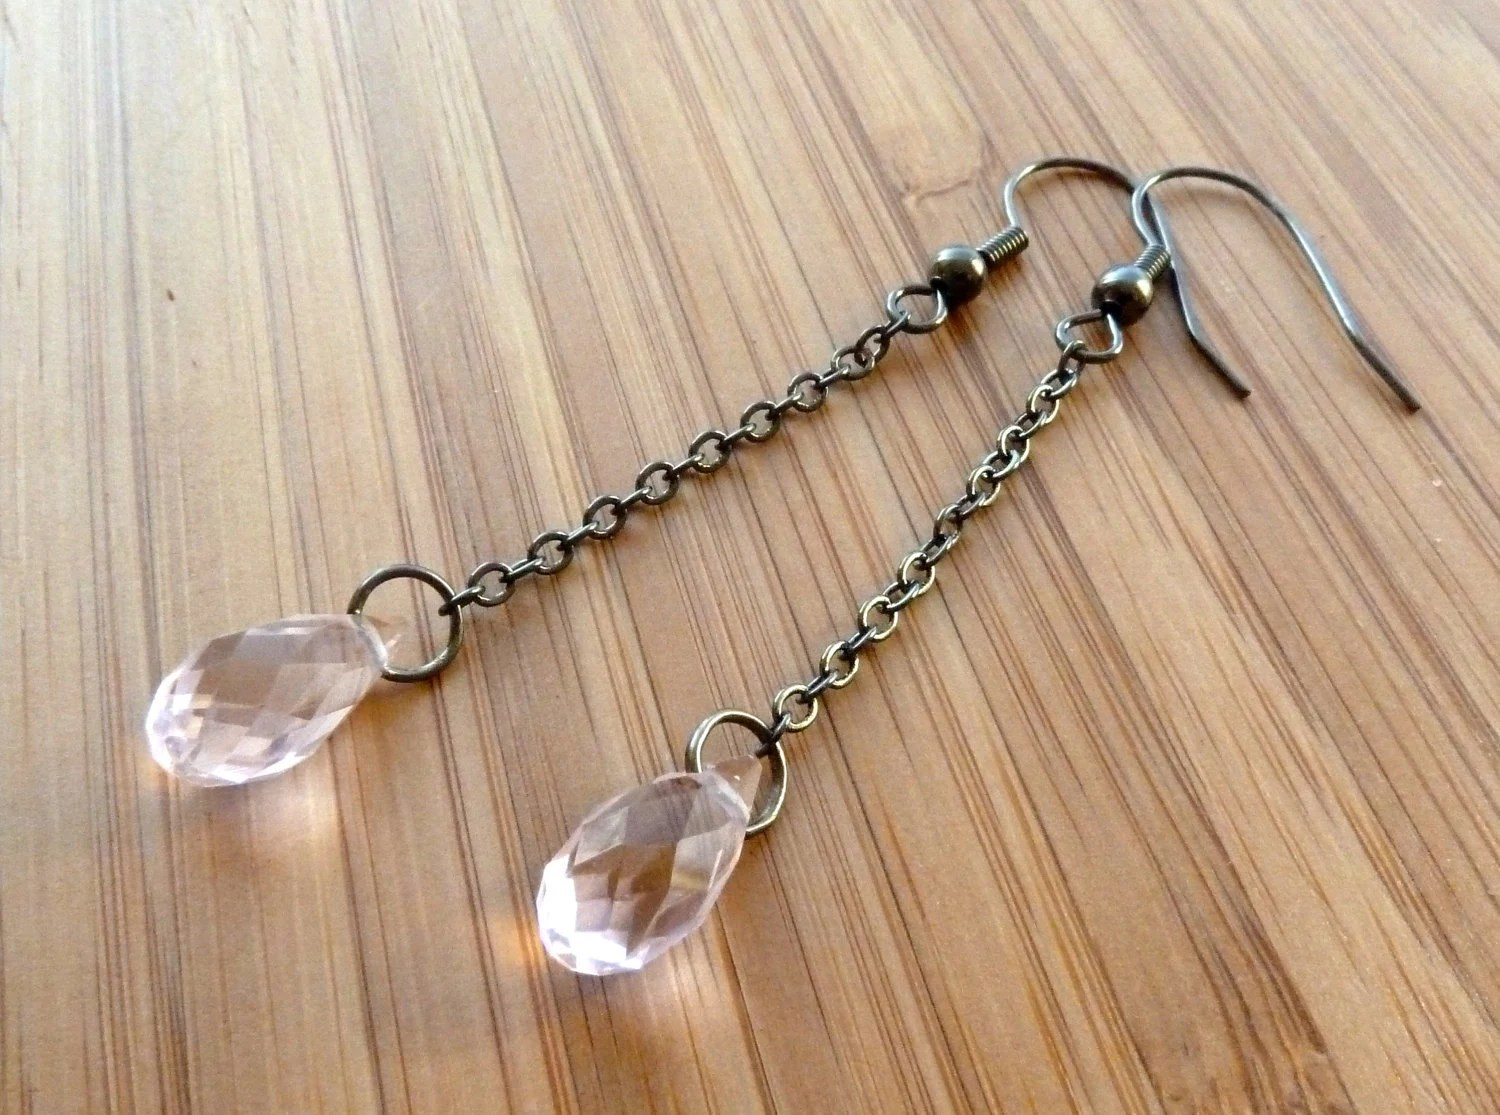 earrings pink swarovski crystal -- Elegant light pink swarovski crystal drop chain earrings in oxidized brass/antiqued gold finish